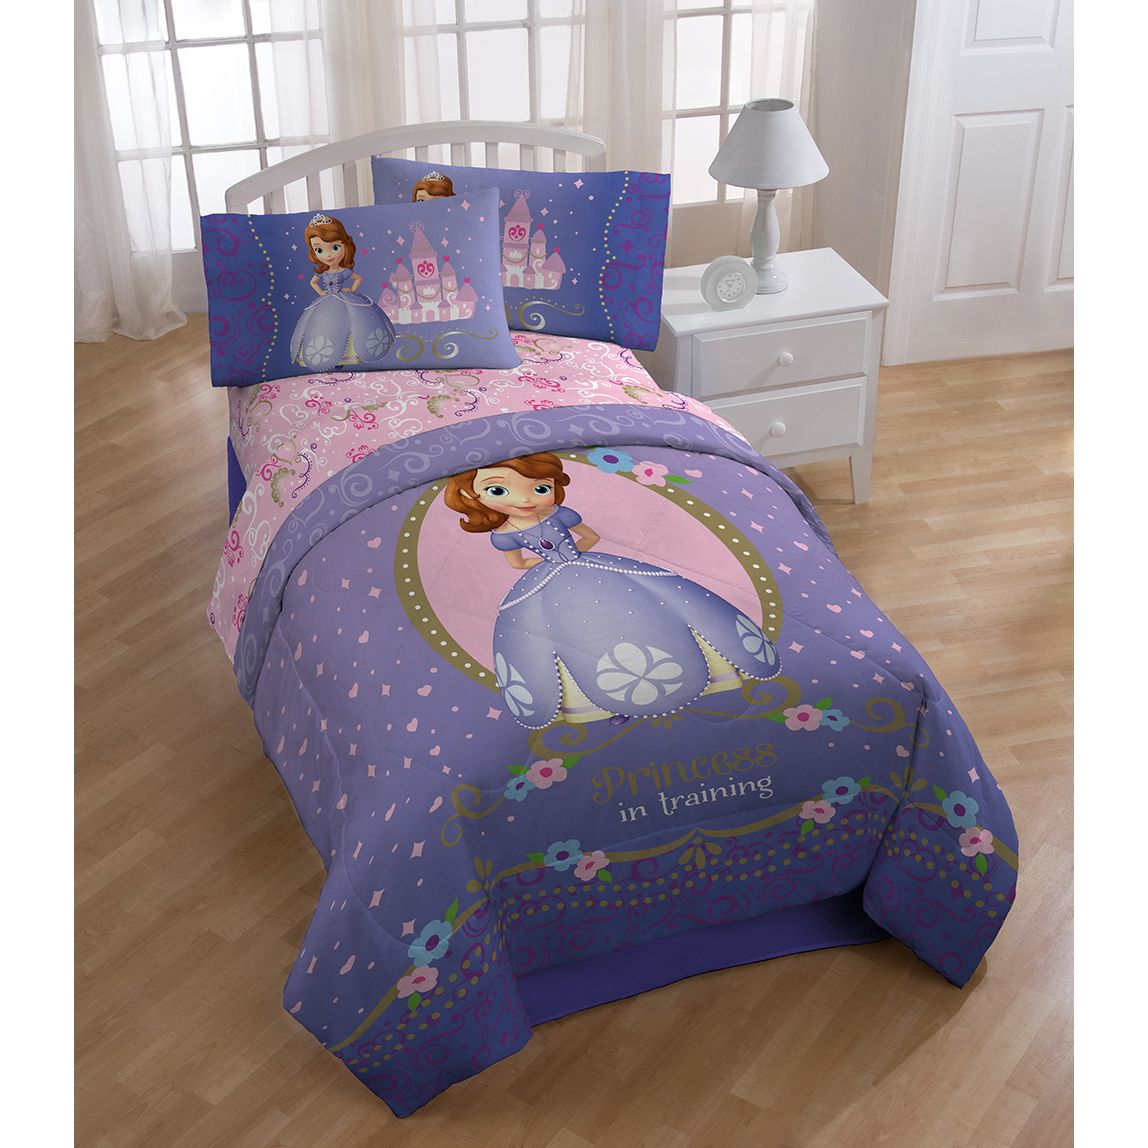 Bedroom Decor Ideas And Designs: Top Eight Princess Sofia The Themed  Bedding Ideas